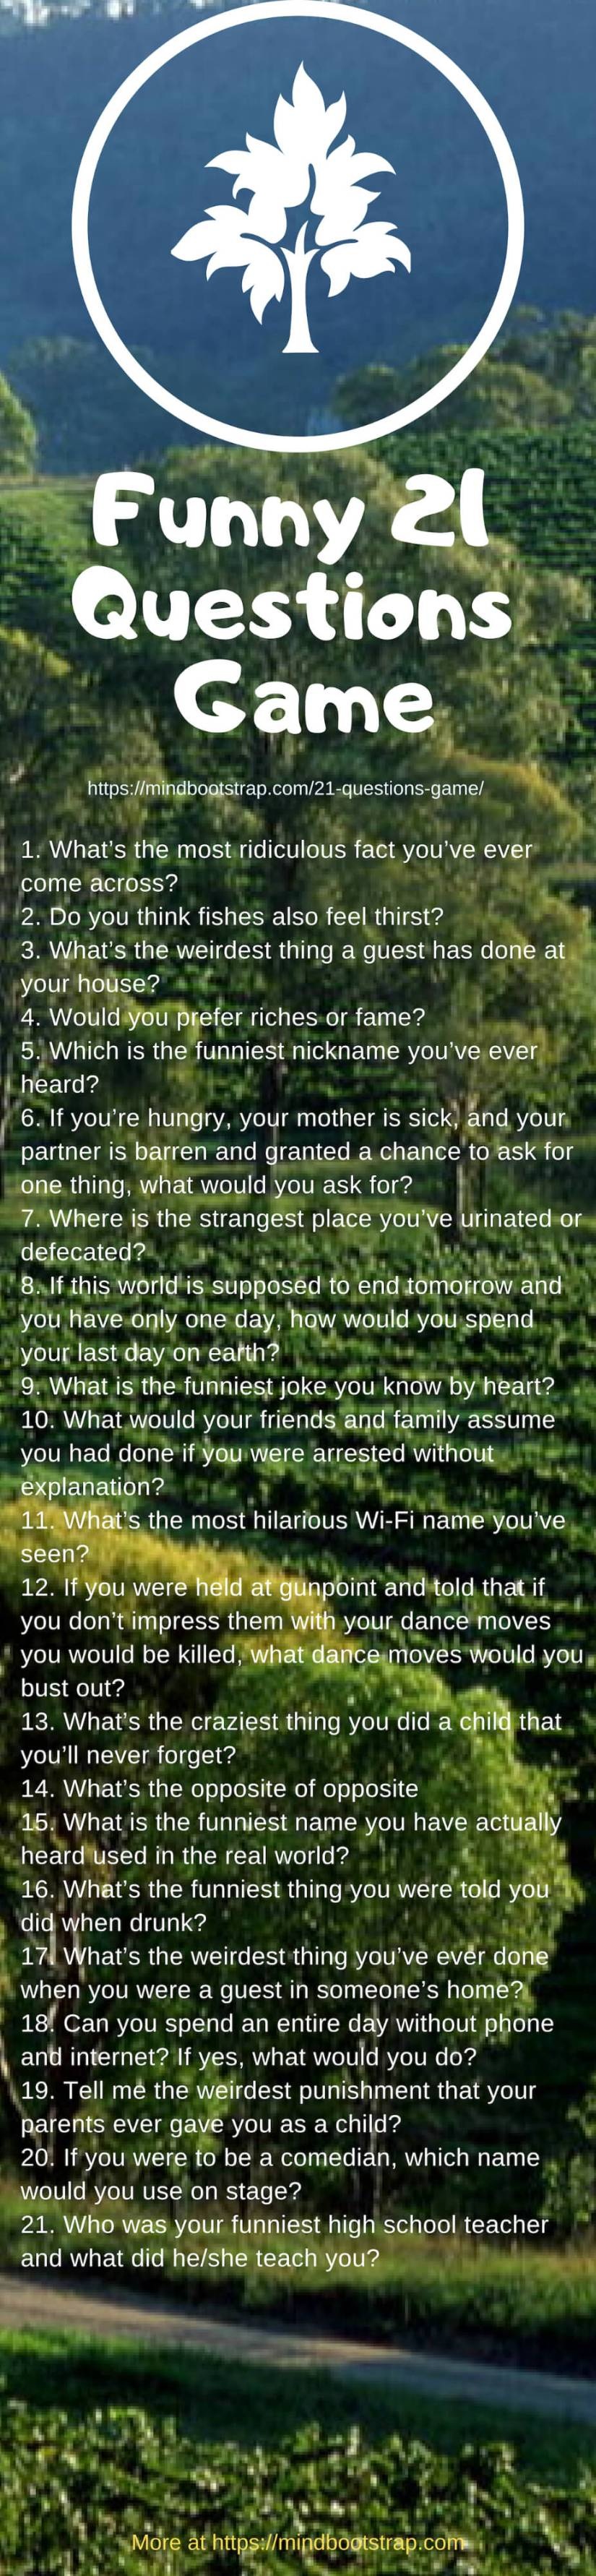 Funny 21 questions game to ask